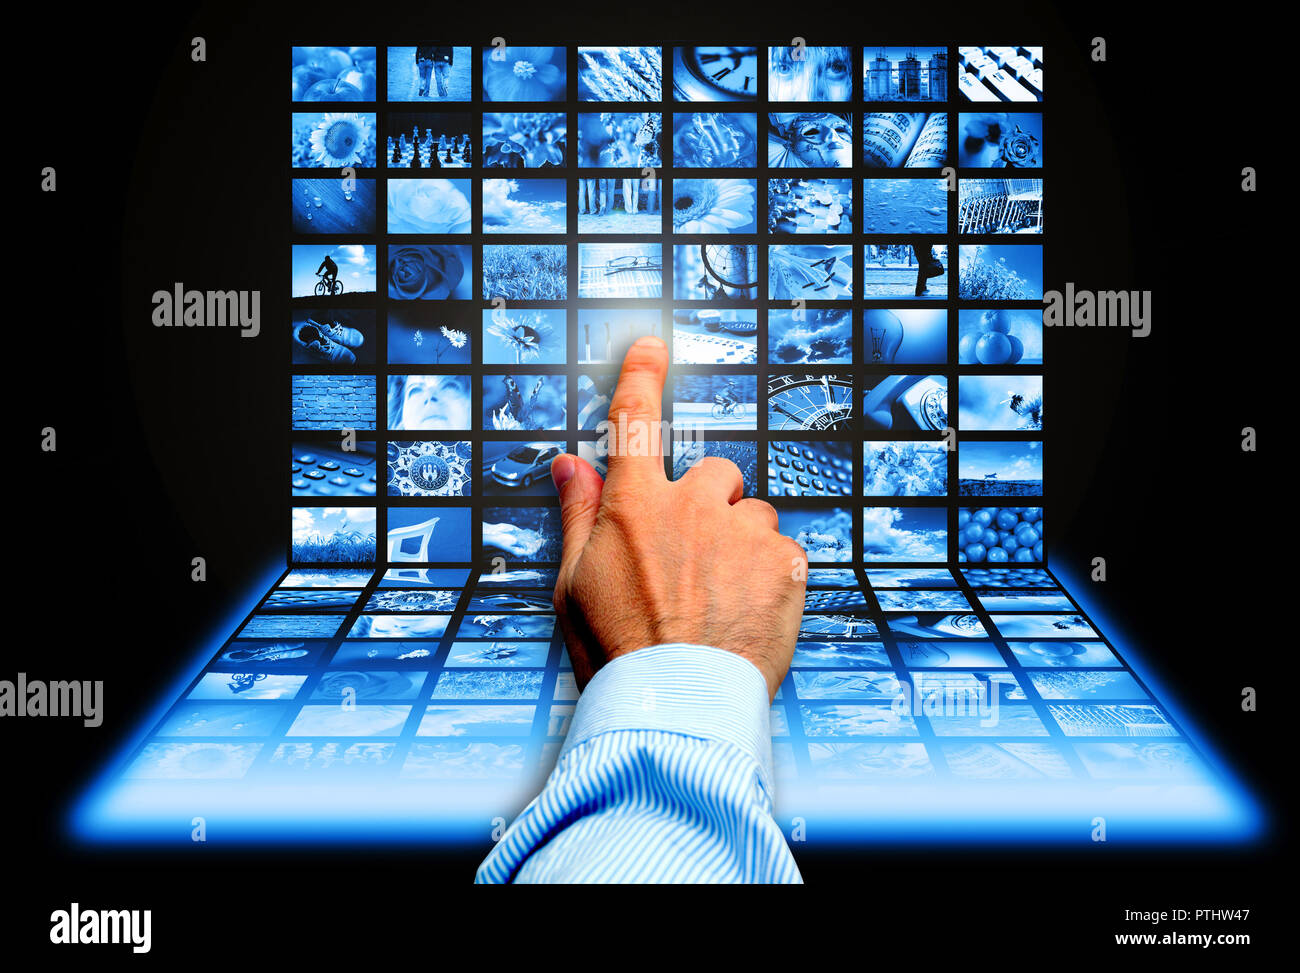 hand touching a screen with many technology images - Stock Image